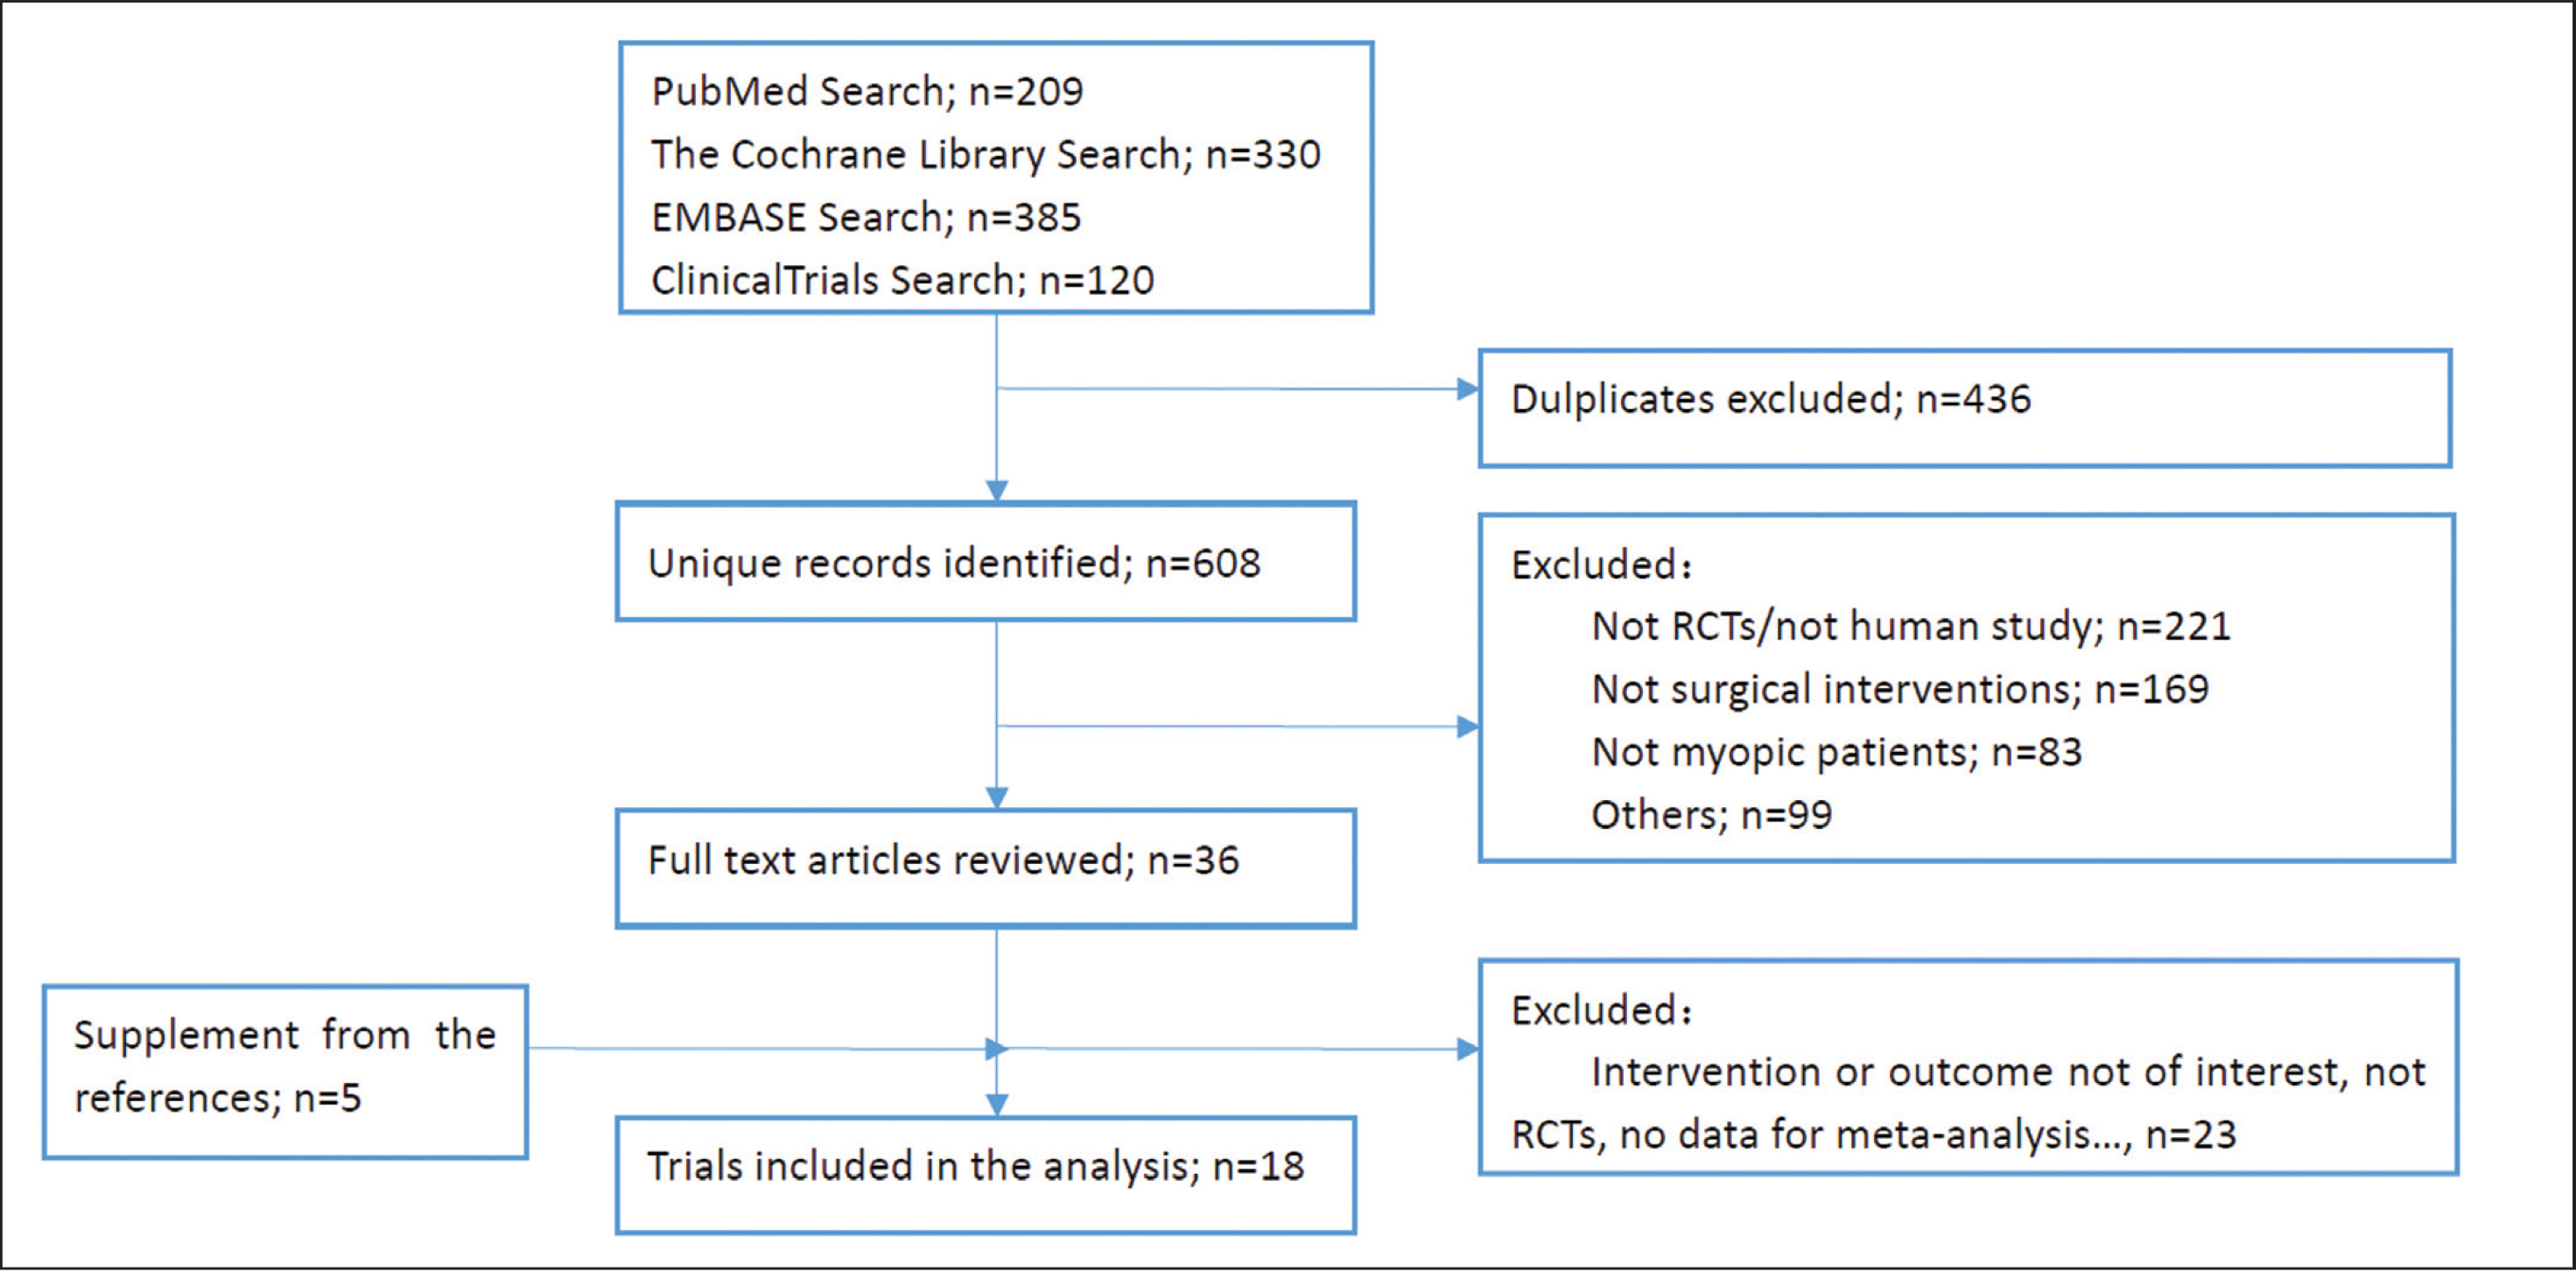 Study selection process. RCT = randomized controlled trial